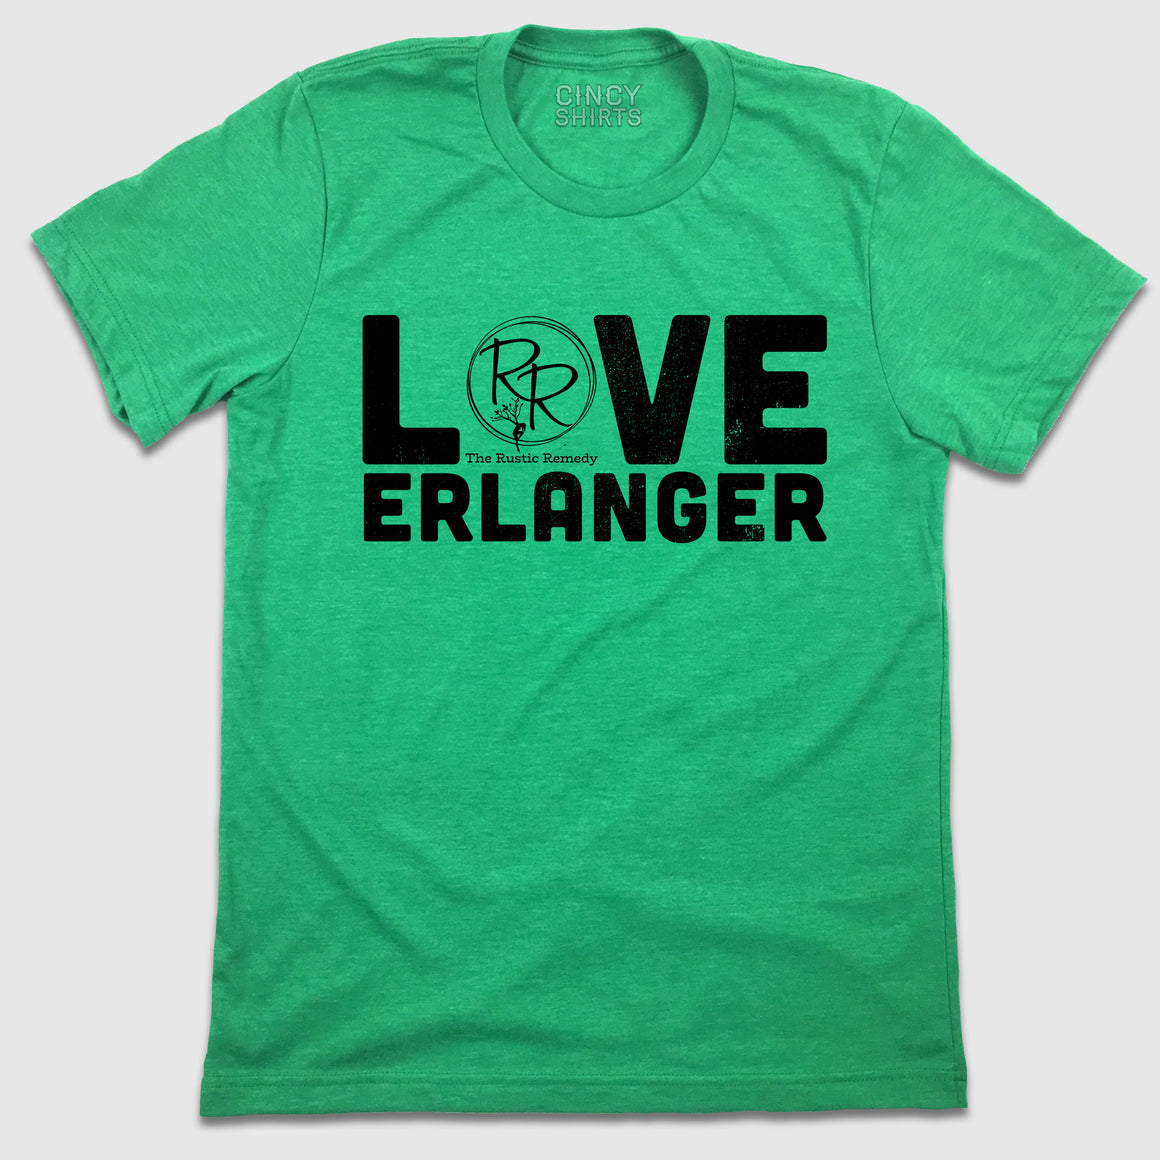 Love Erlanger - Rustic Remedy - Cincy Shirts